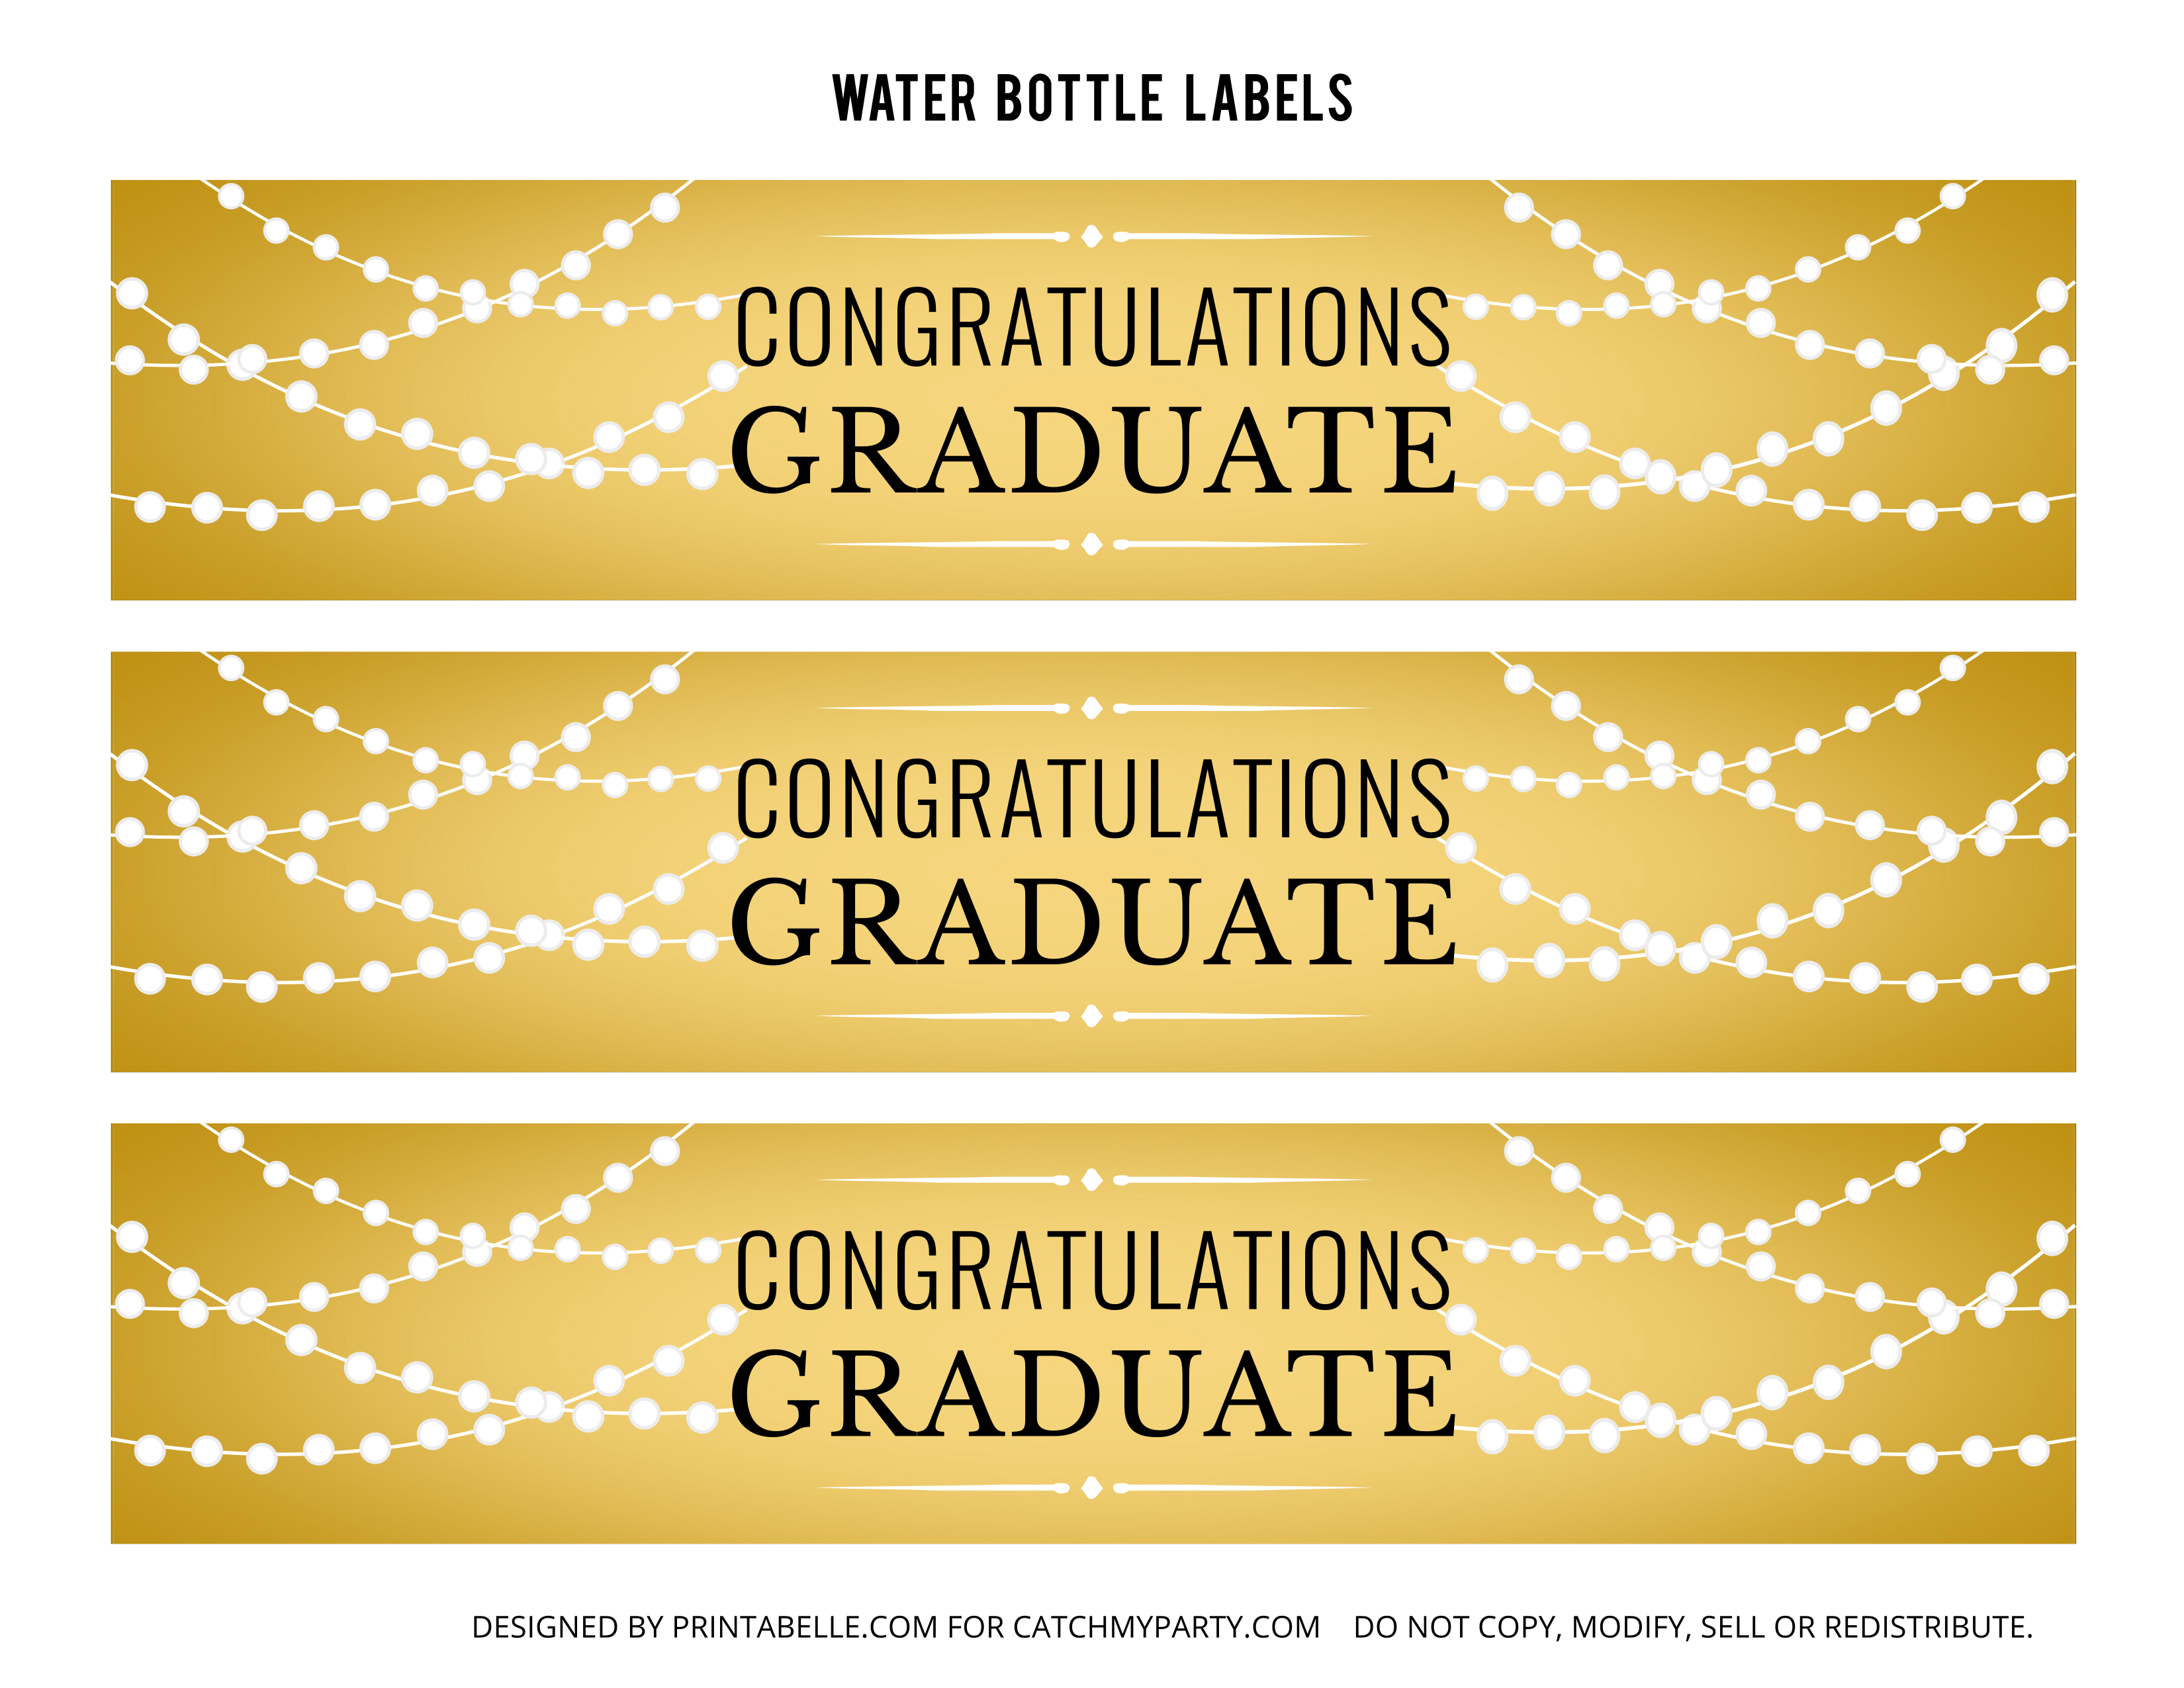 Free Gold Graduation Printables | Catch My Party - Free Printable Water Bottle Labels Graduation